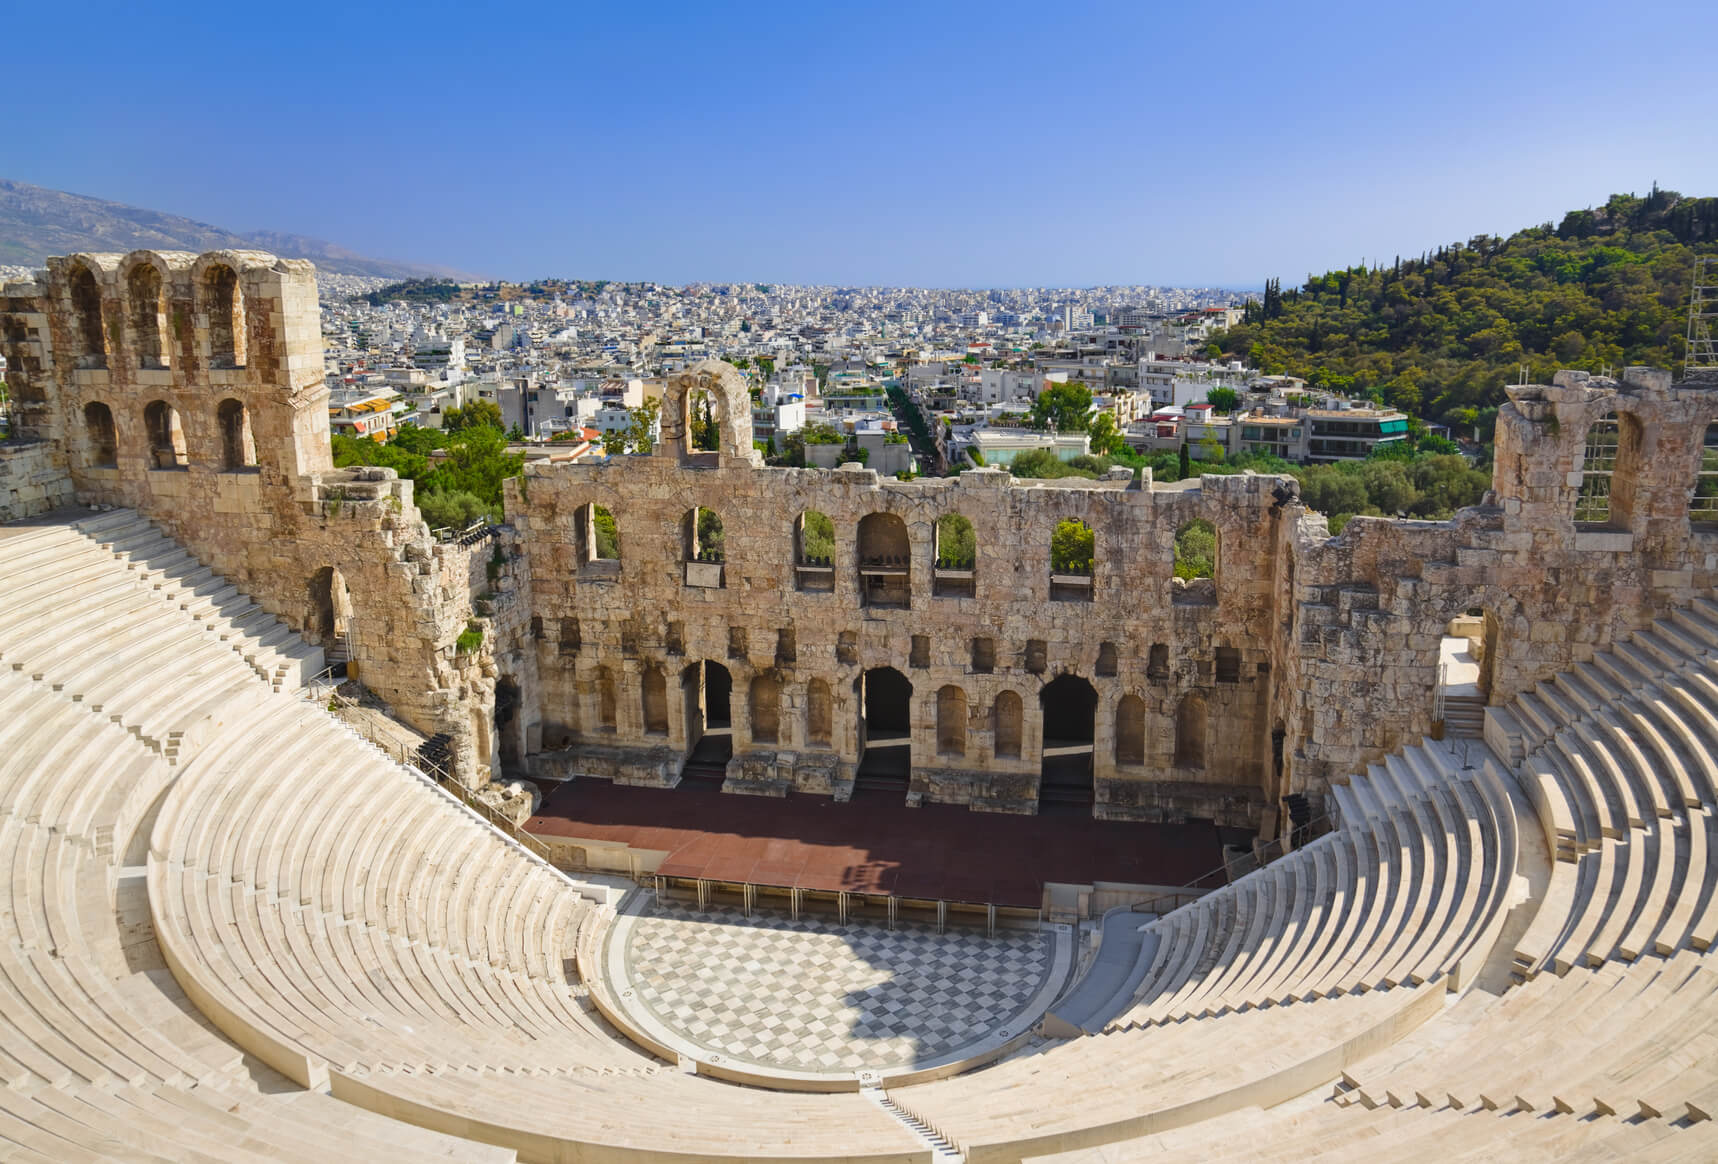 Vienna, Austria to Athens, Greece for only €16 roundtrip (Nov dates)